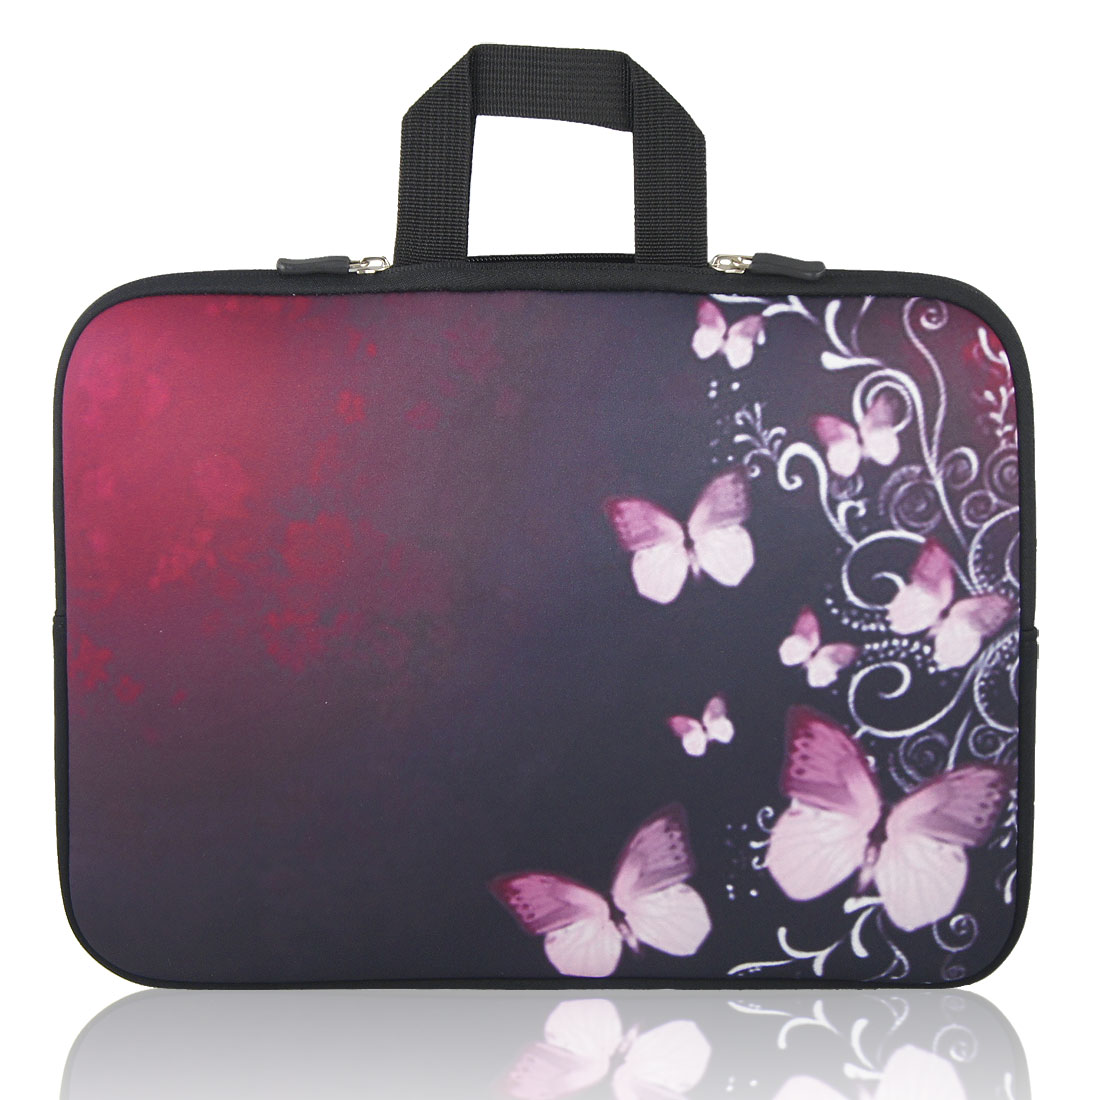 "13"" 13.3"" Butterfly Laptop Notebook Sleeve Handle Bag for HP Asus"